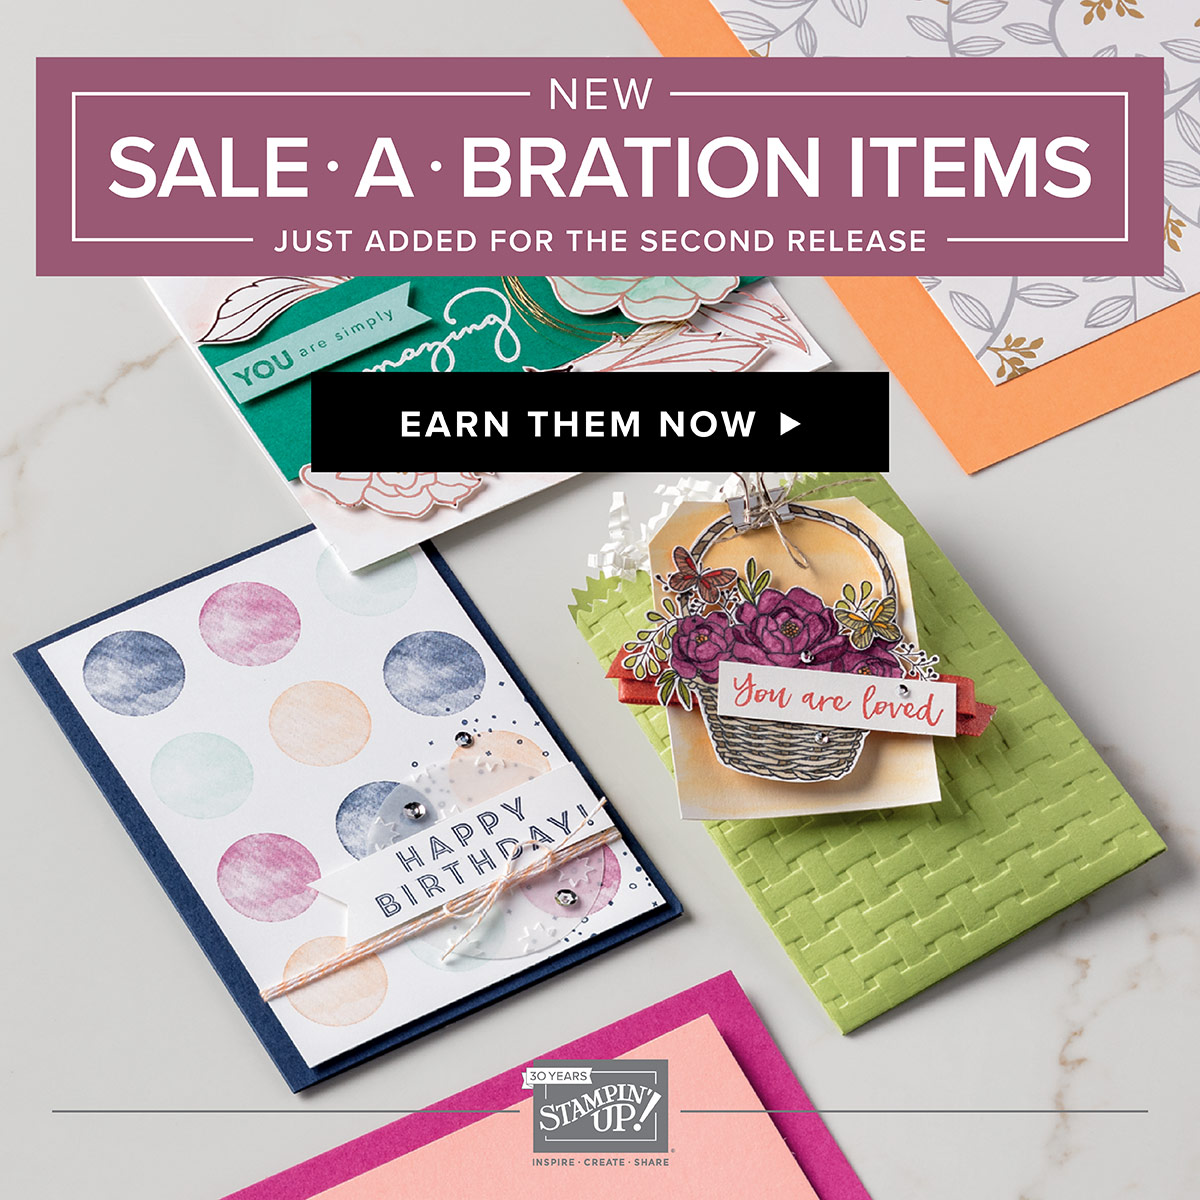 Sale-a-Bration Brochure 2018 2nd release